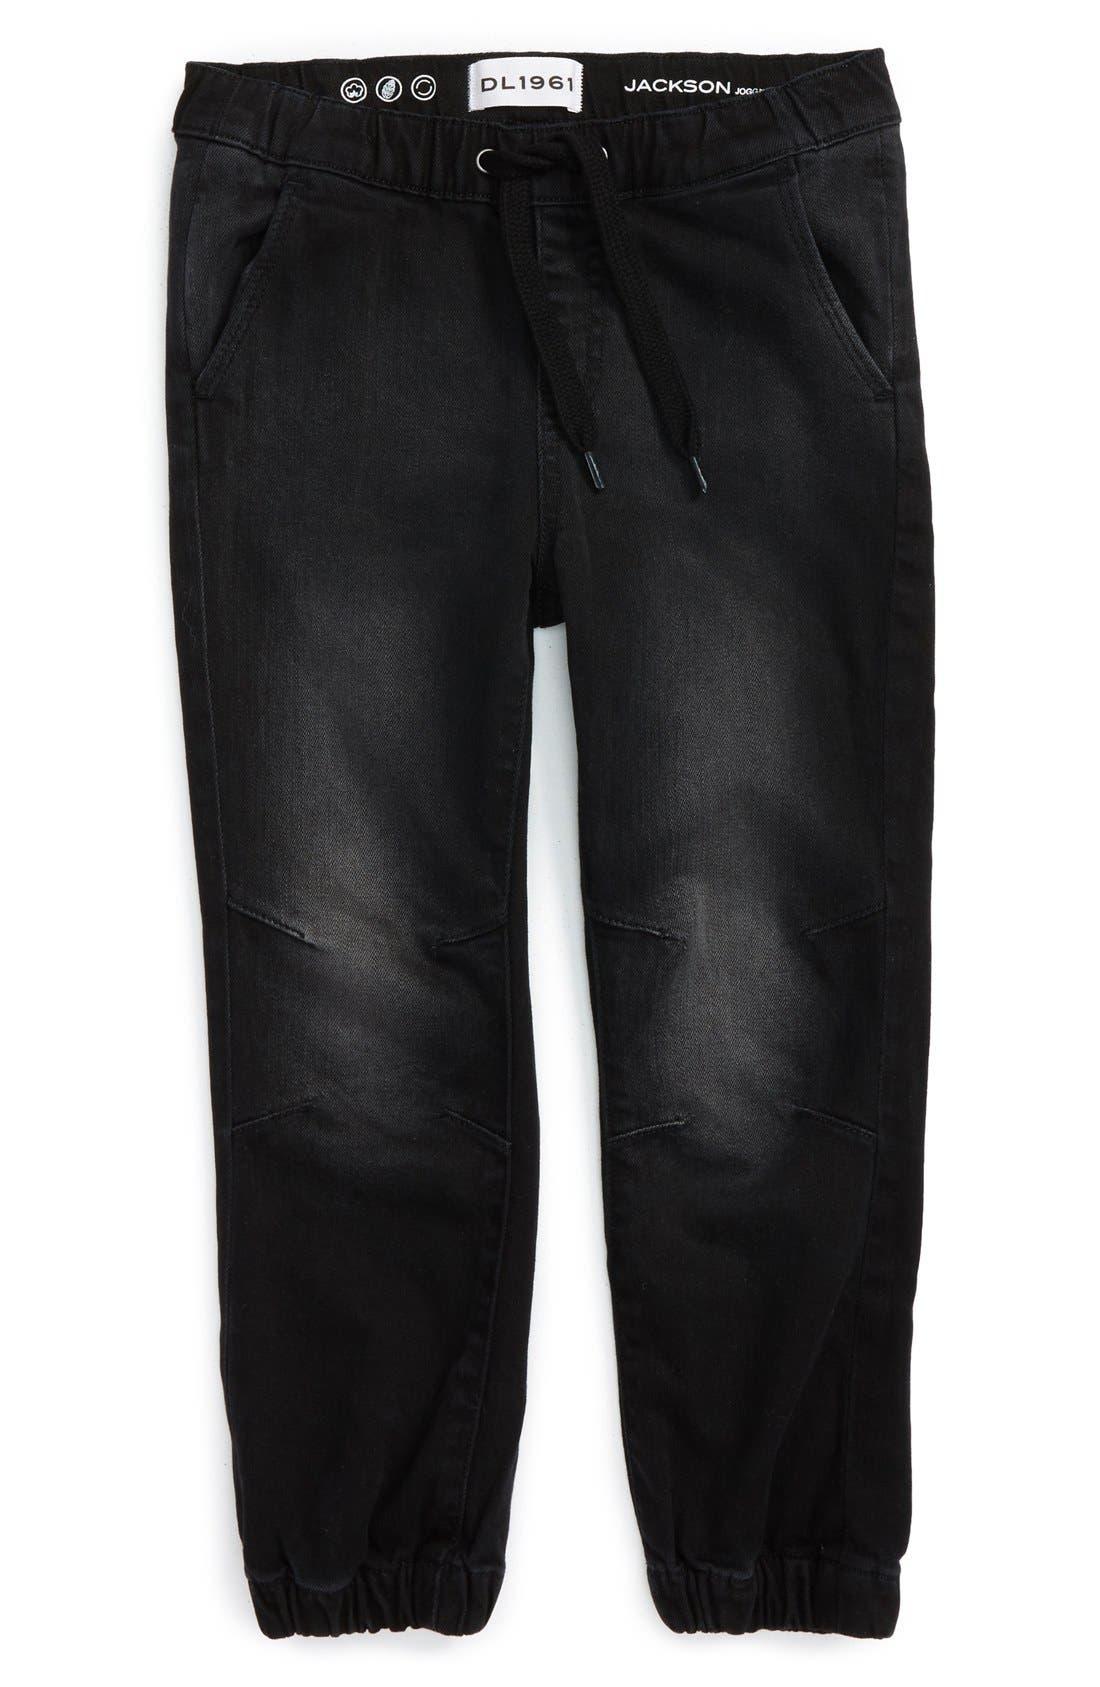 'Jackson' Jogger Pants,                             Main thumbnail 1, color,                             Fuse